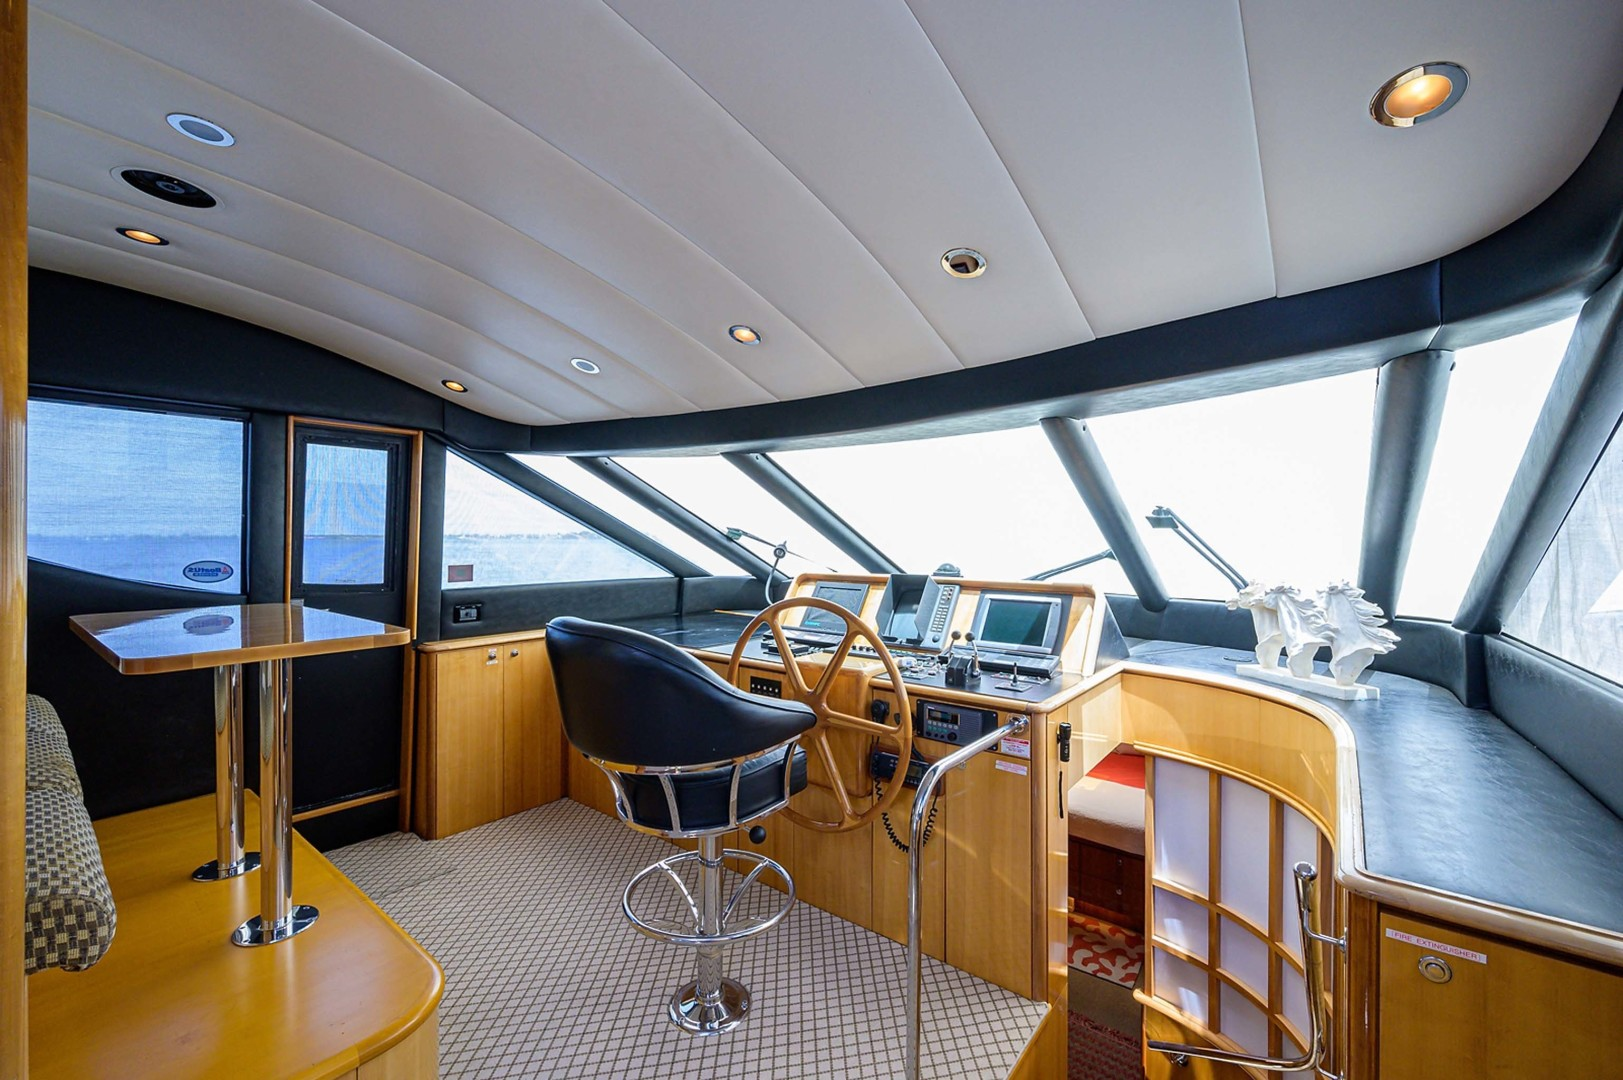 Queenship-Pilothouse Motor Yacht 1996-UNBRIDLED Stuart-Florida-United States-Centerline Helm with ample vision all around-1383269 | Thumbnail